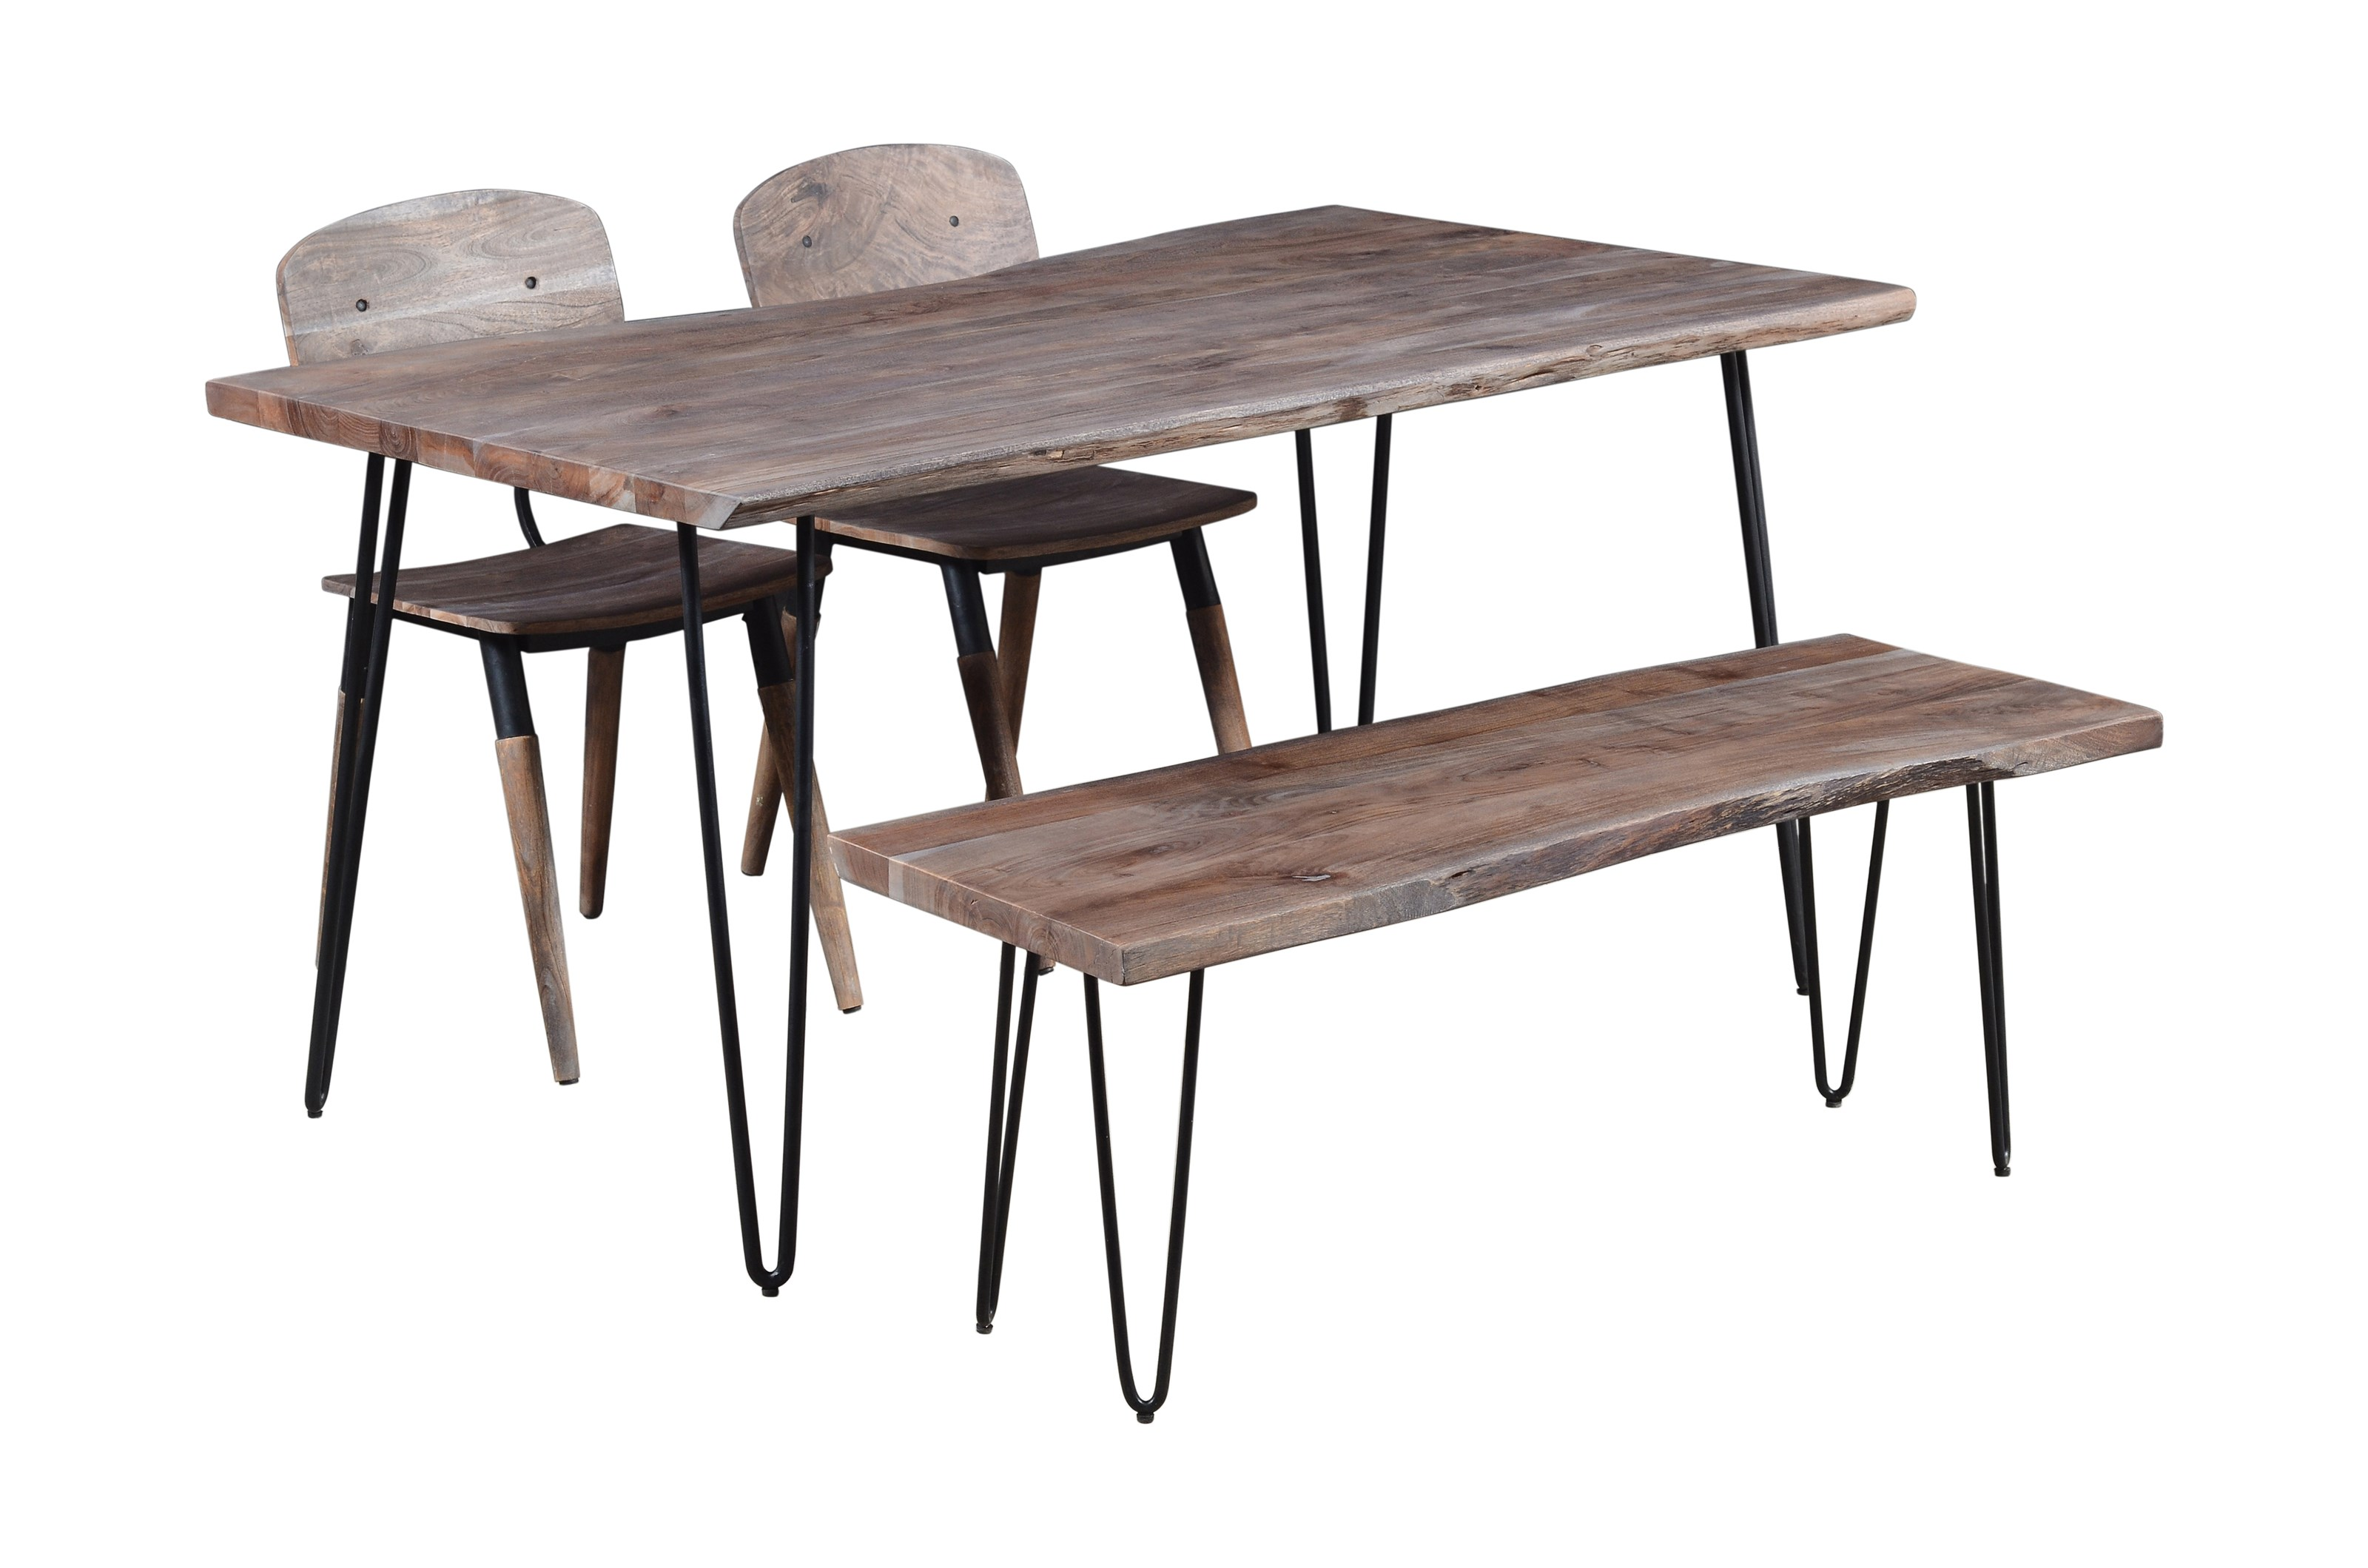 """Nature's Edge 60"""" Dining Table with 2 Chairs and Bench by Jofran at Jofran"""